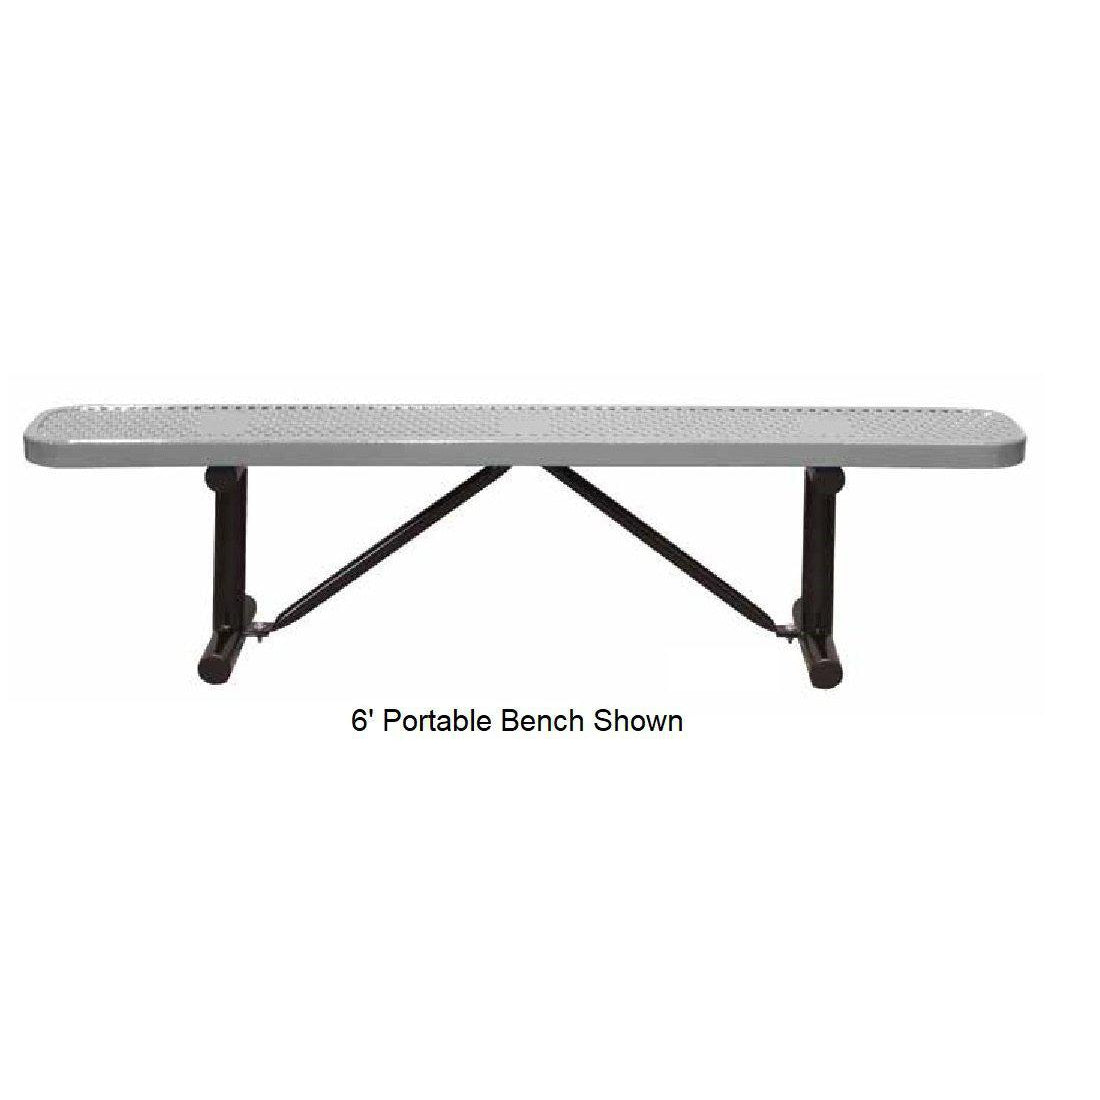 10' Standard Perforated Bench Without Back, Surface Mount